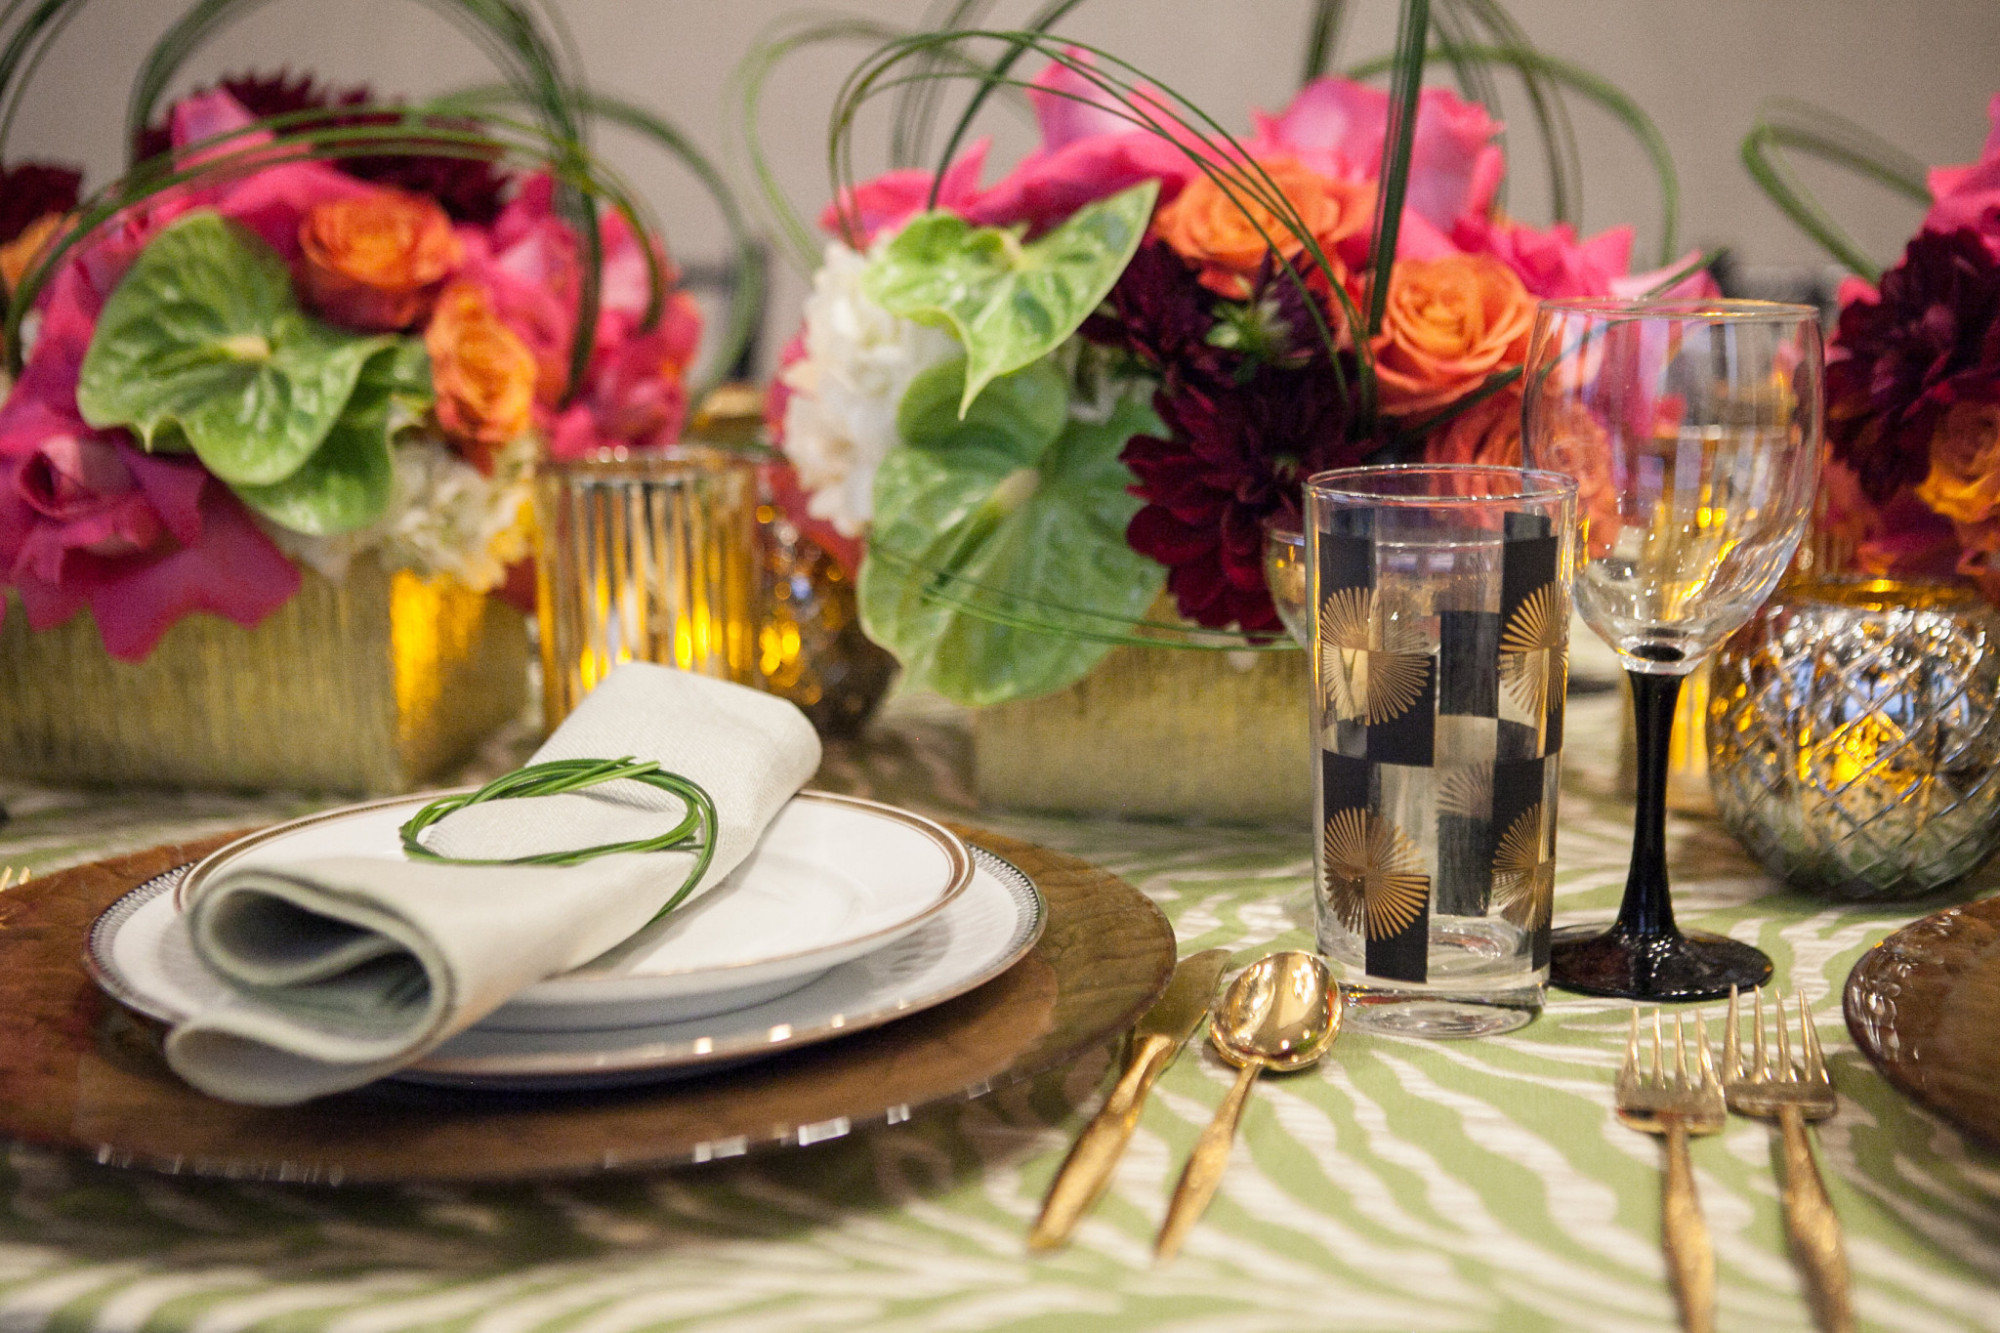 Festive Holiday Tabletop Design